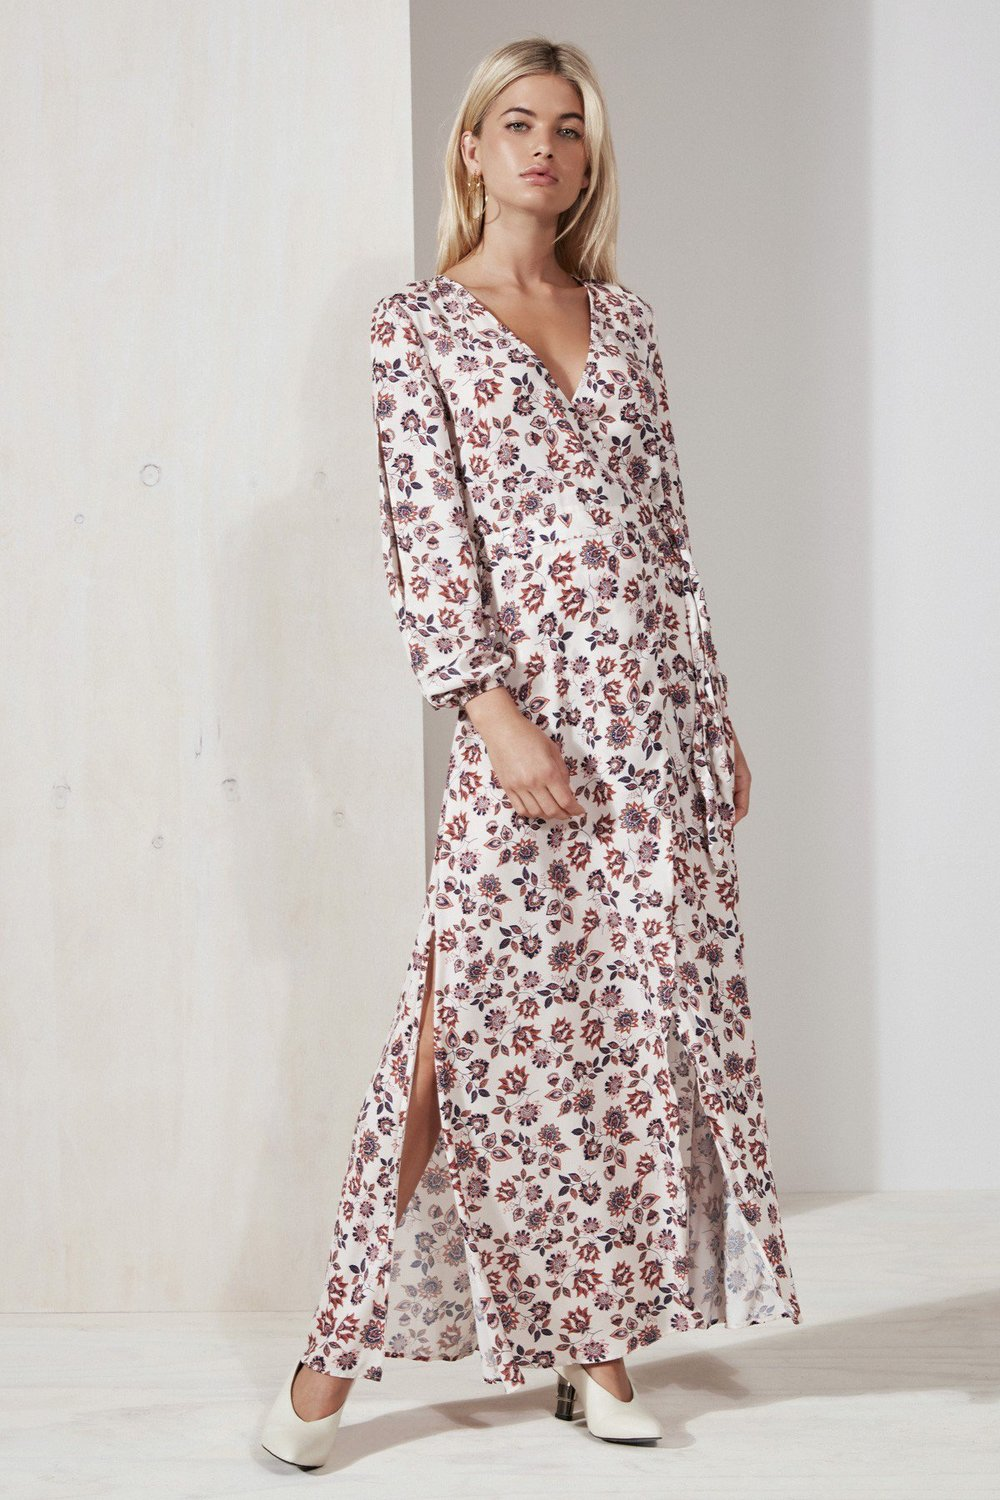 Shop The Fifth Carousel Wrap Dress.